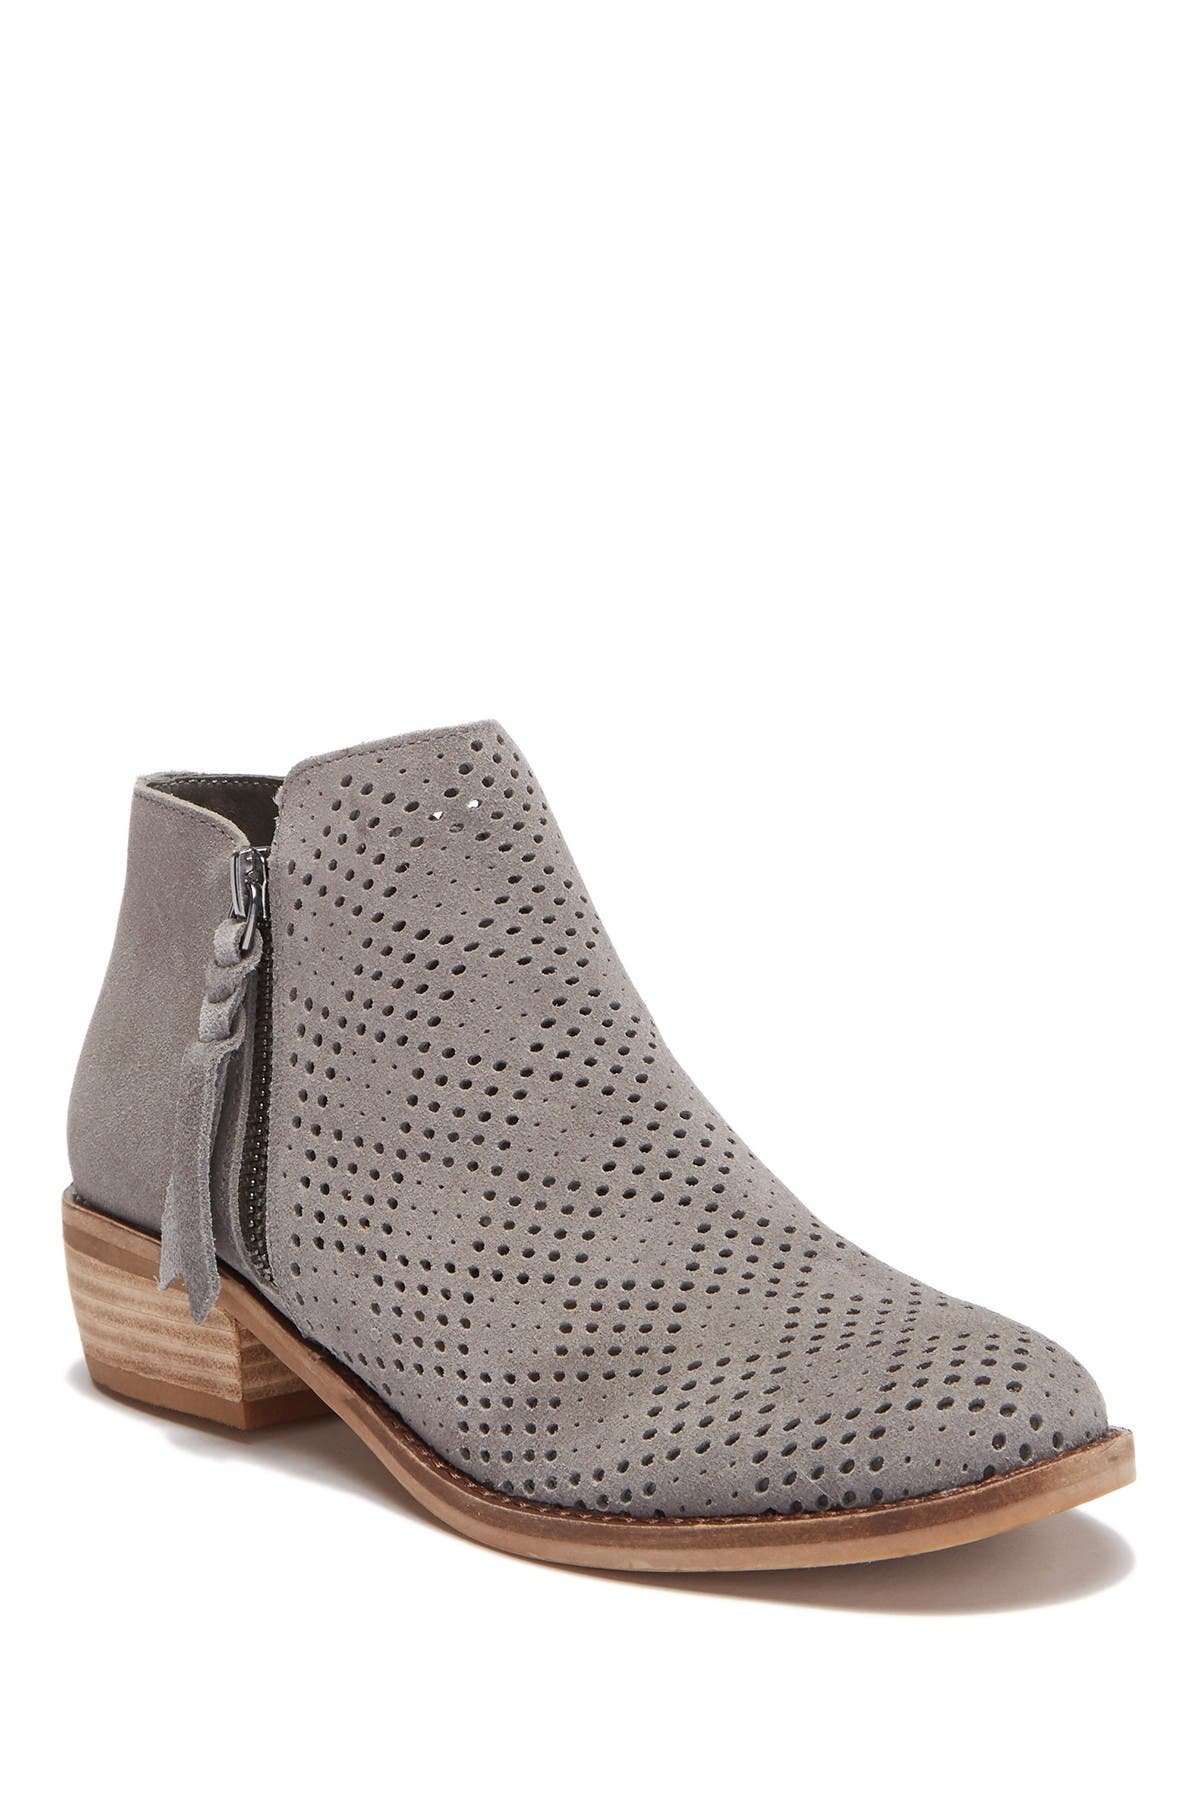 Image of Dolce Vita Sydnie Suede Ankle Boot